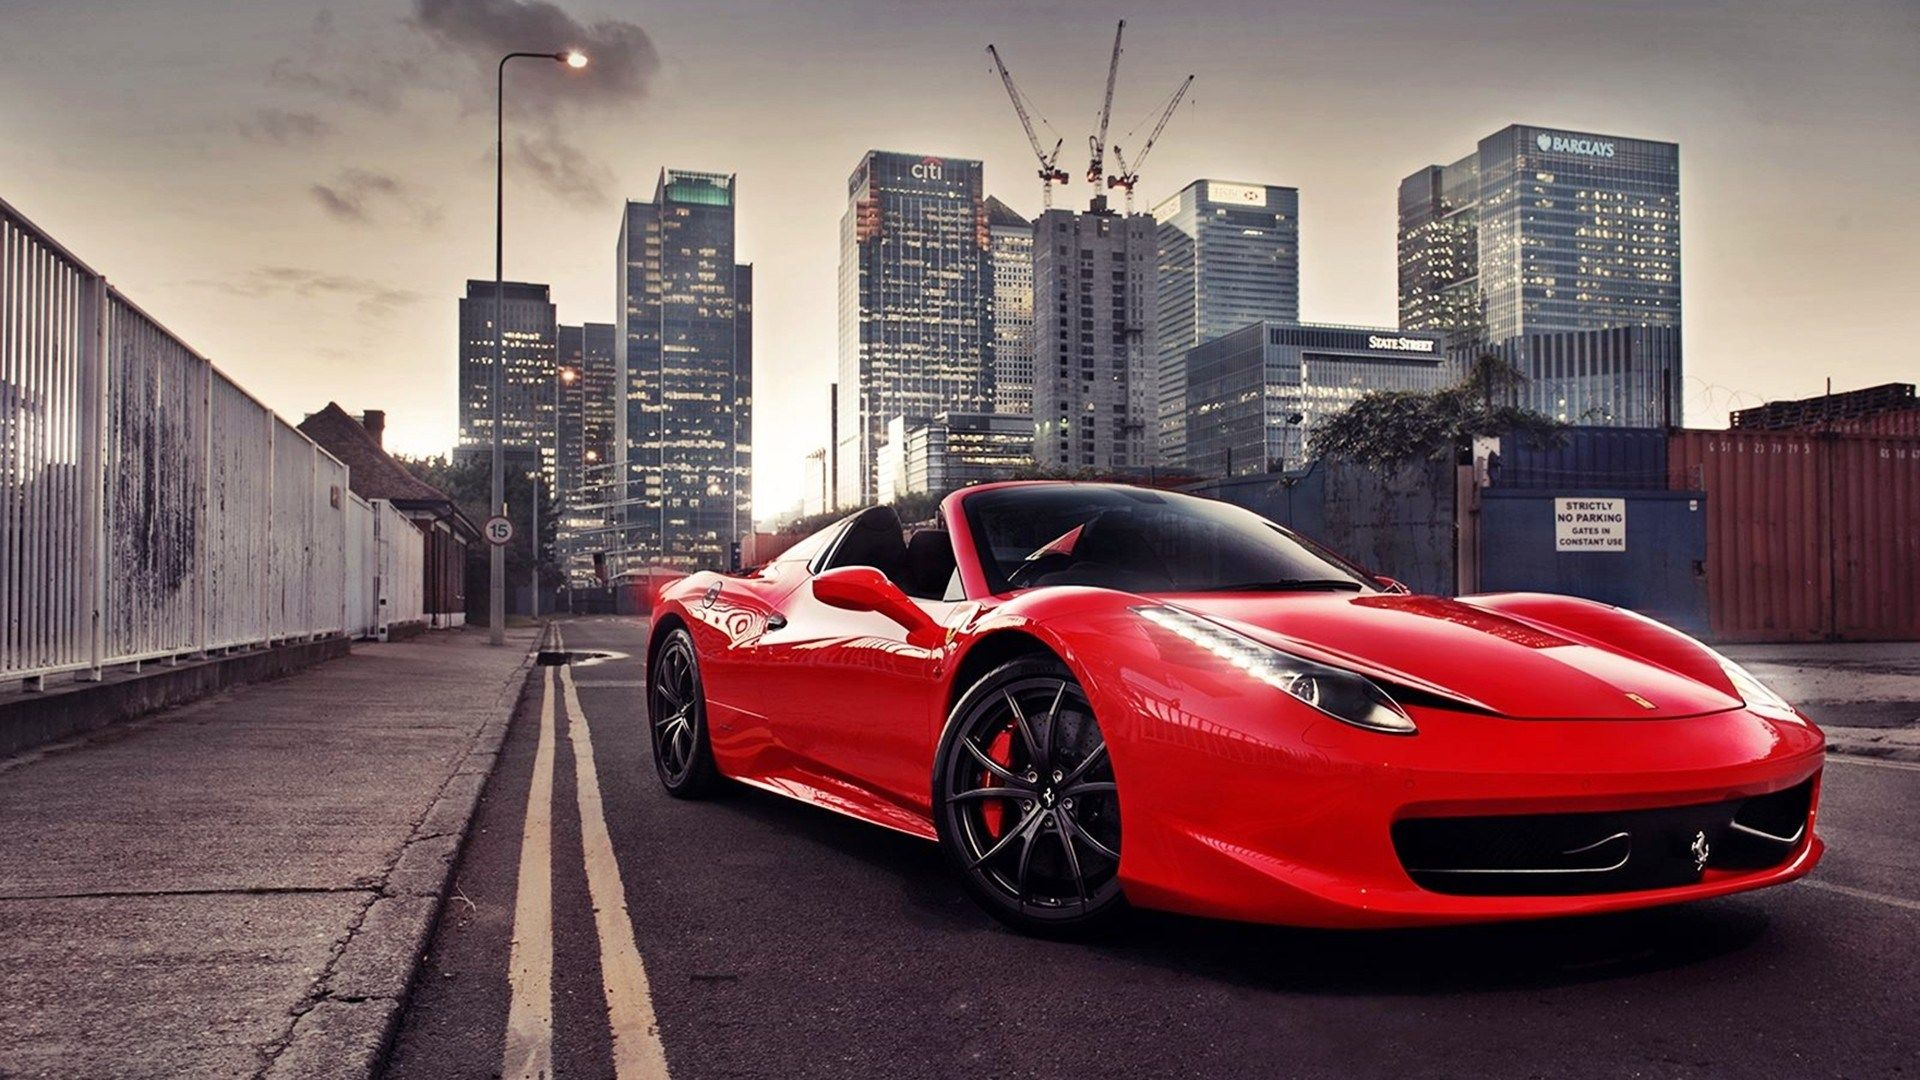 cool design ferrari about in one a rent for remodel cake with vegas cars hour carolbly at com monaco